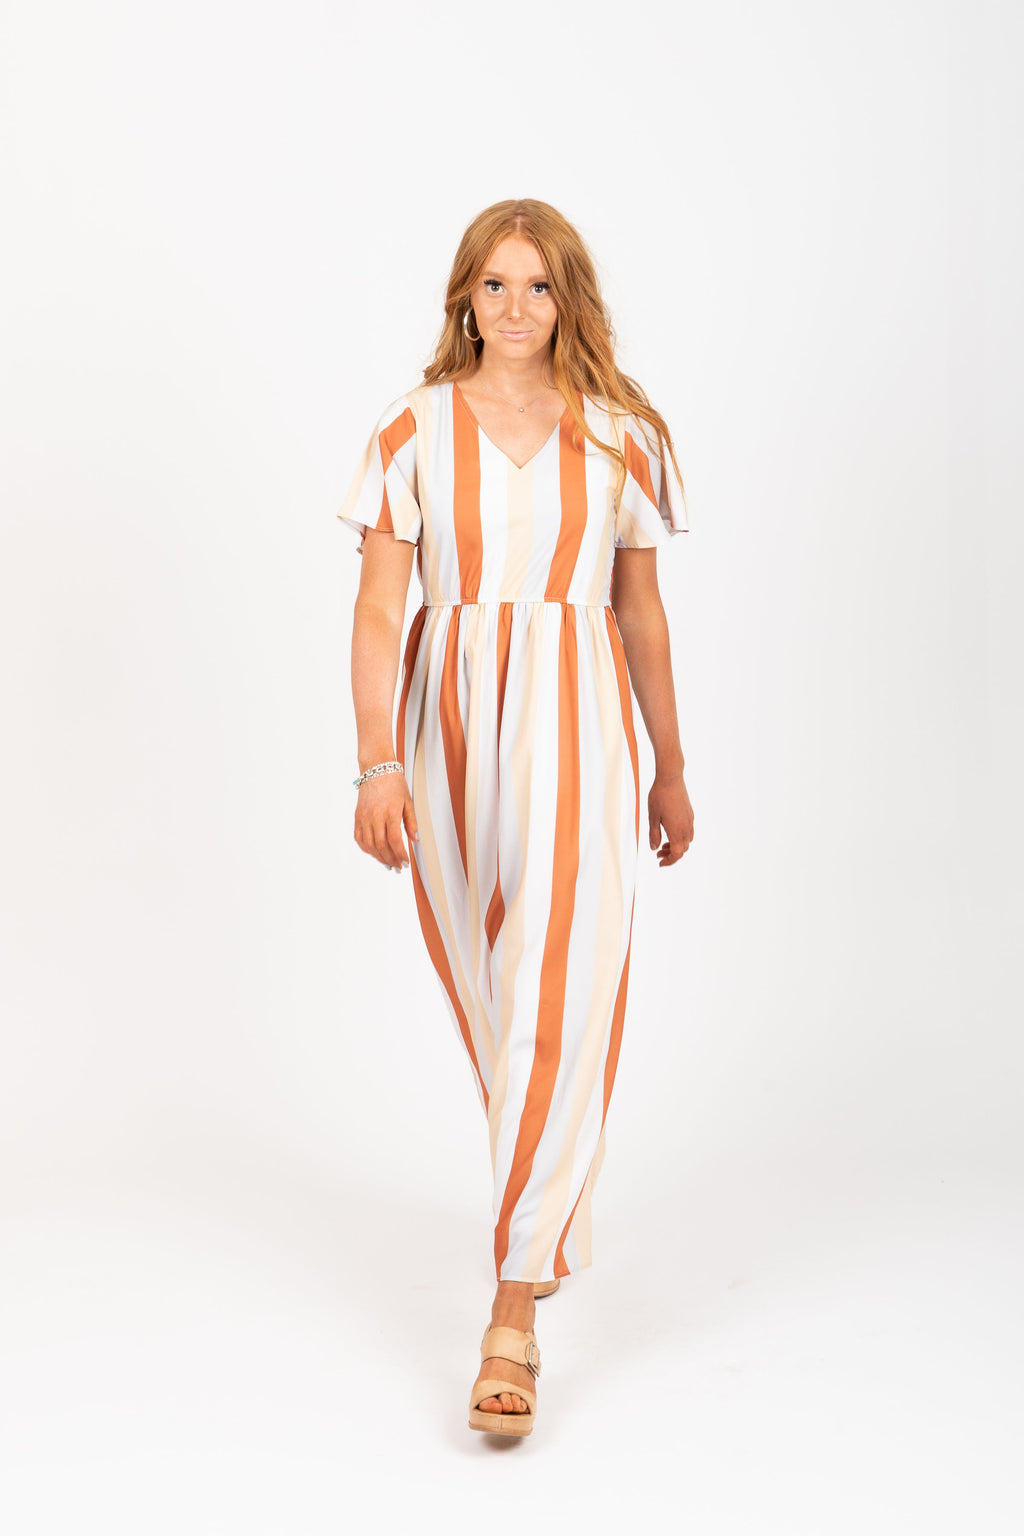 The Butler Striped Maxi Dress in Multi, studio shoot; front view